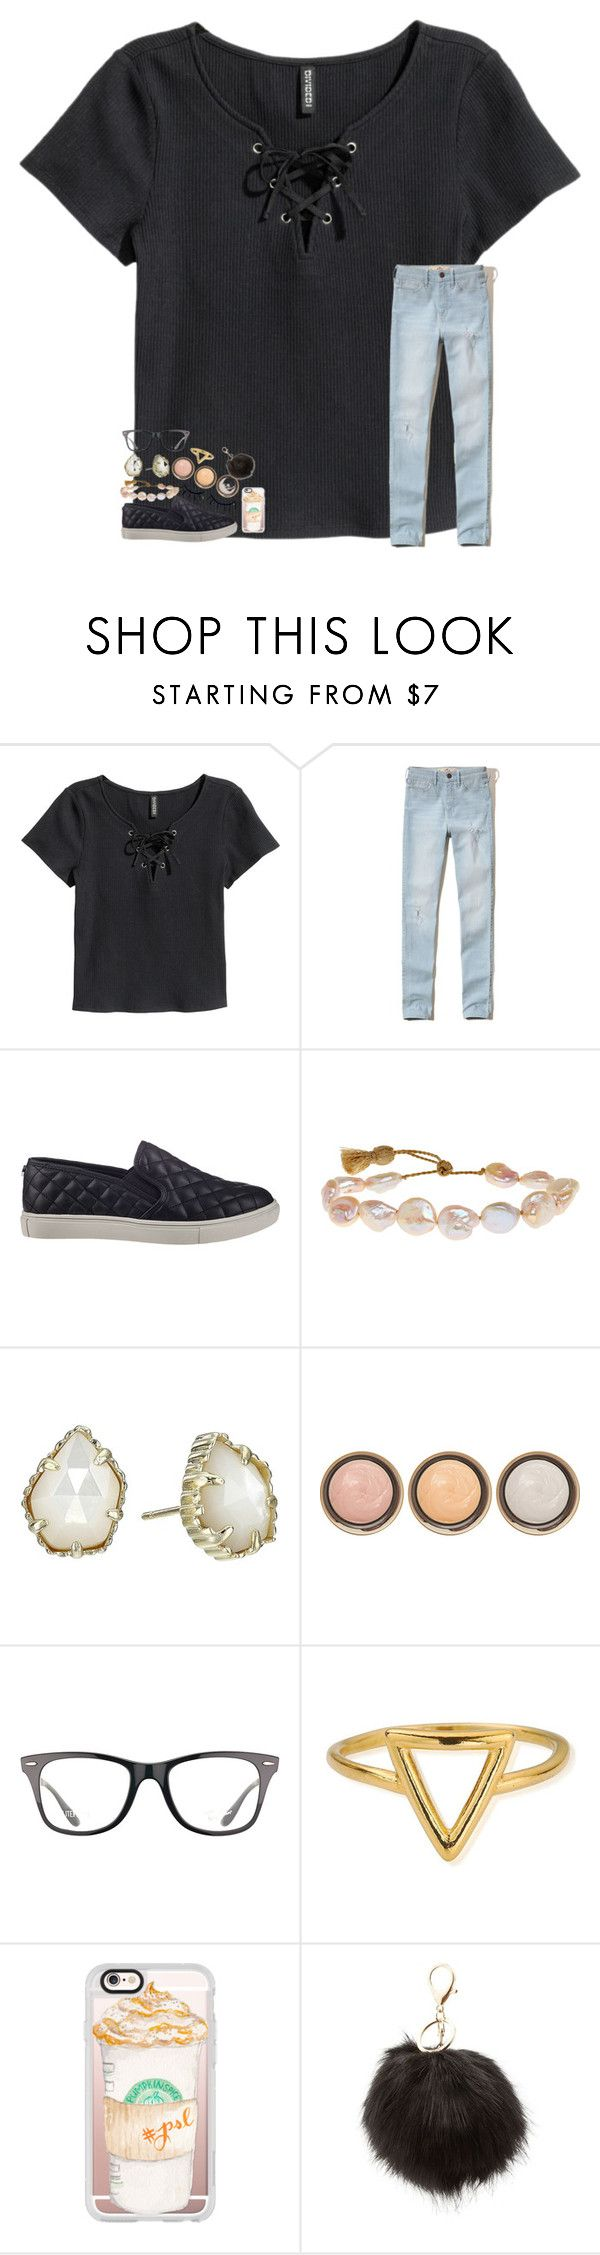 """""""Idk what to wear tomorrow 😕"""" by sweettoothegj ❤ liked on Polyvore featuring H&M, Hollister Co., Steve Madden, Lena Skadegard, Kendra Scott, By Terry, Ray-Ban, ChloBo, Casetify and Charlotte Russe"""